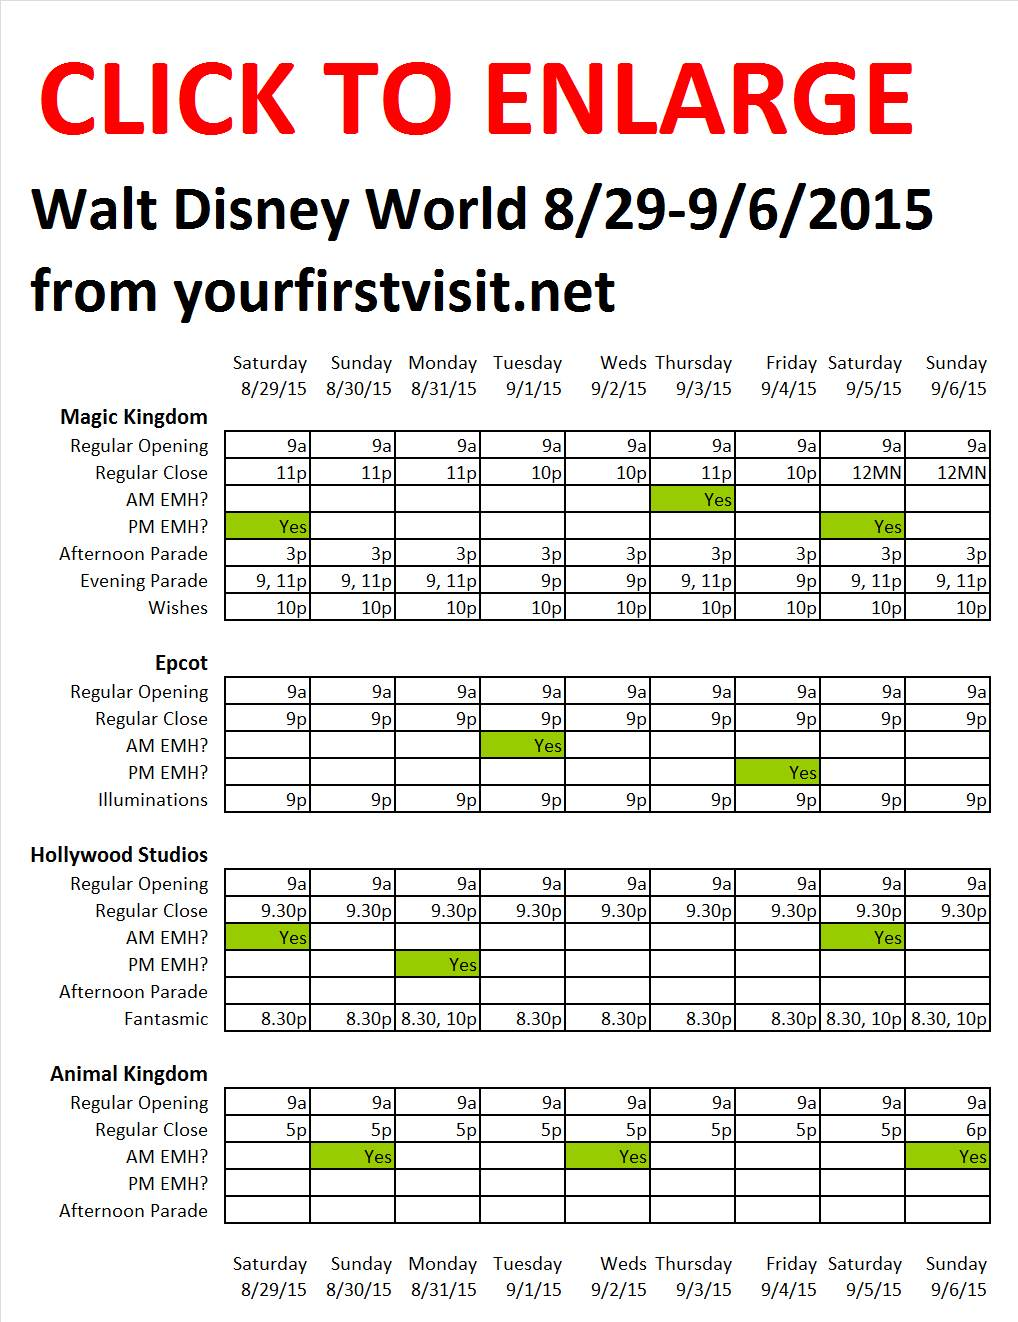 Disney World 8-29 to 9-6-2015 from yourfirstvisit.net